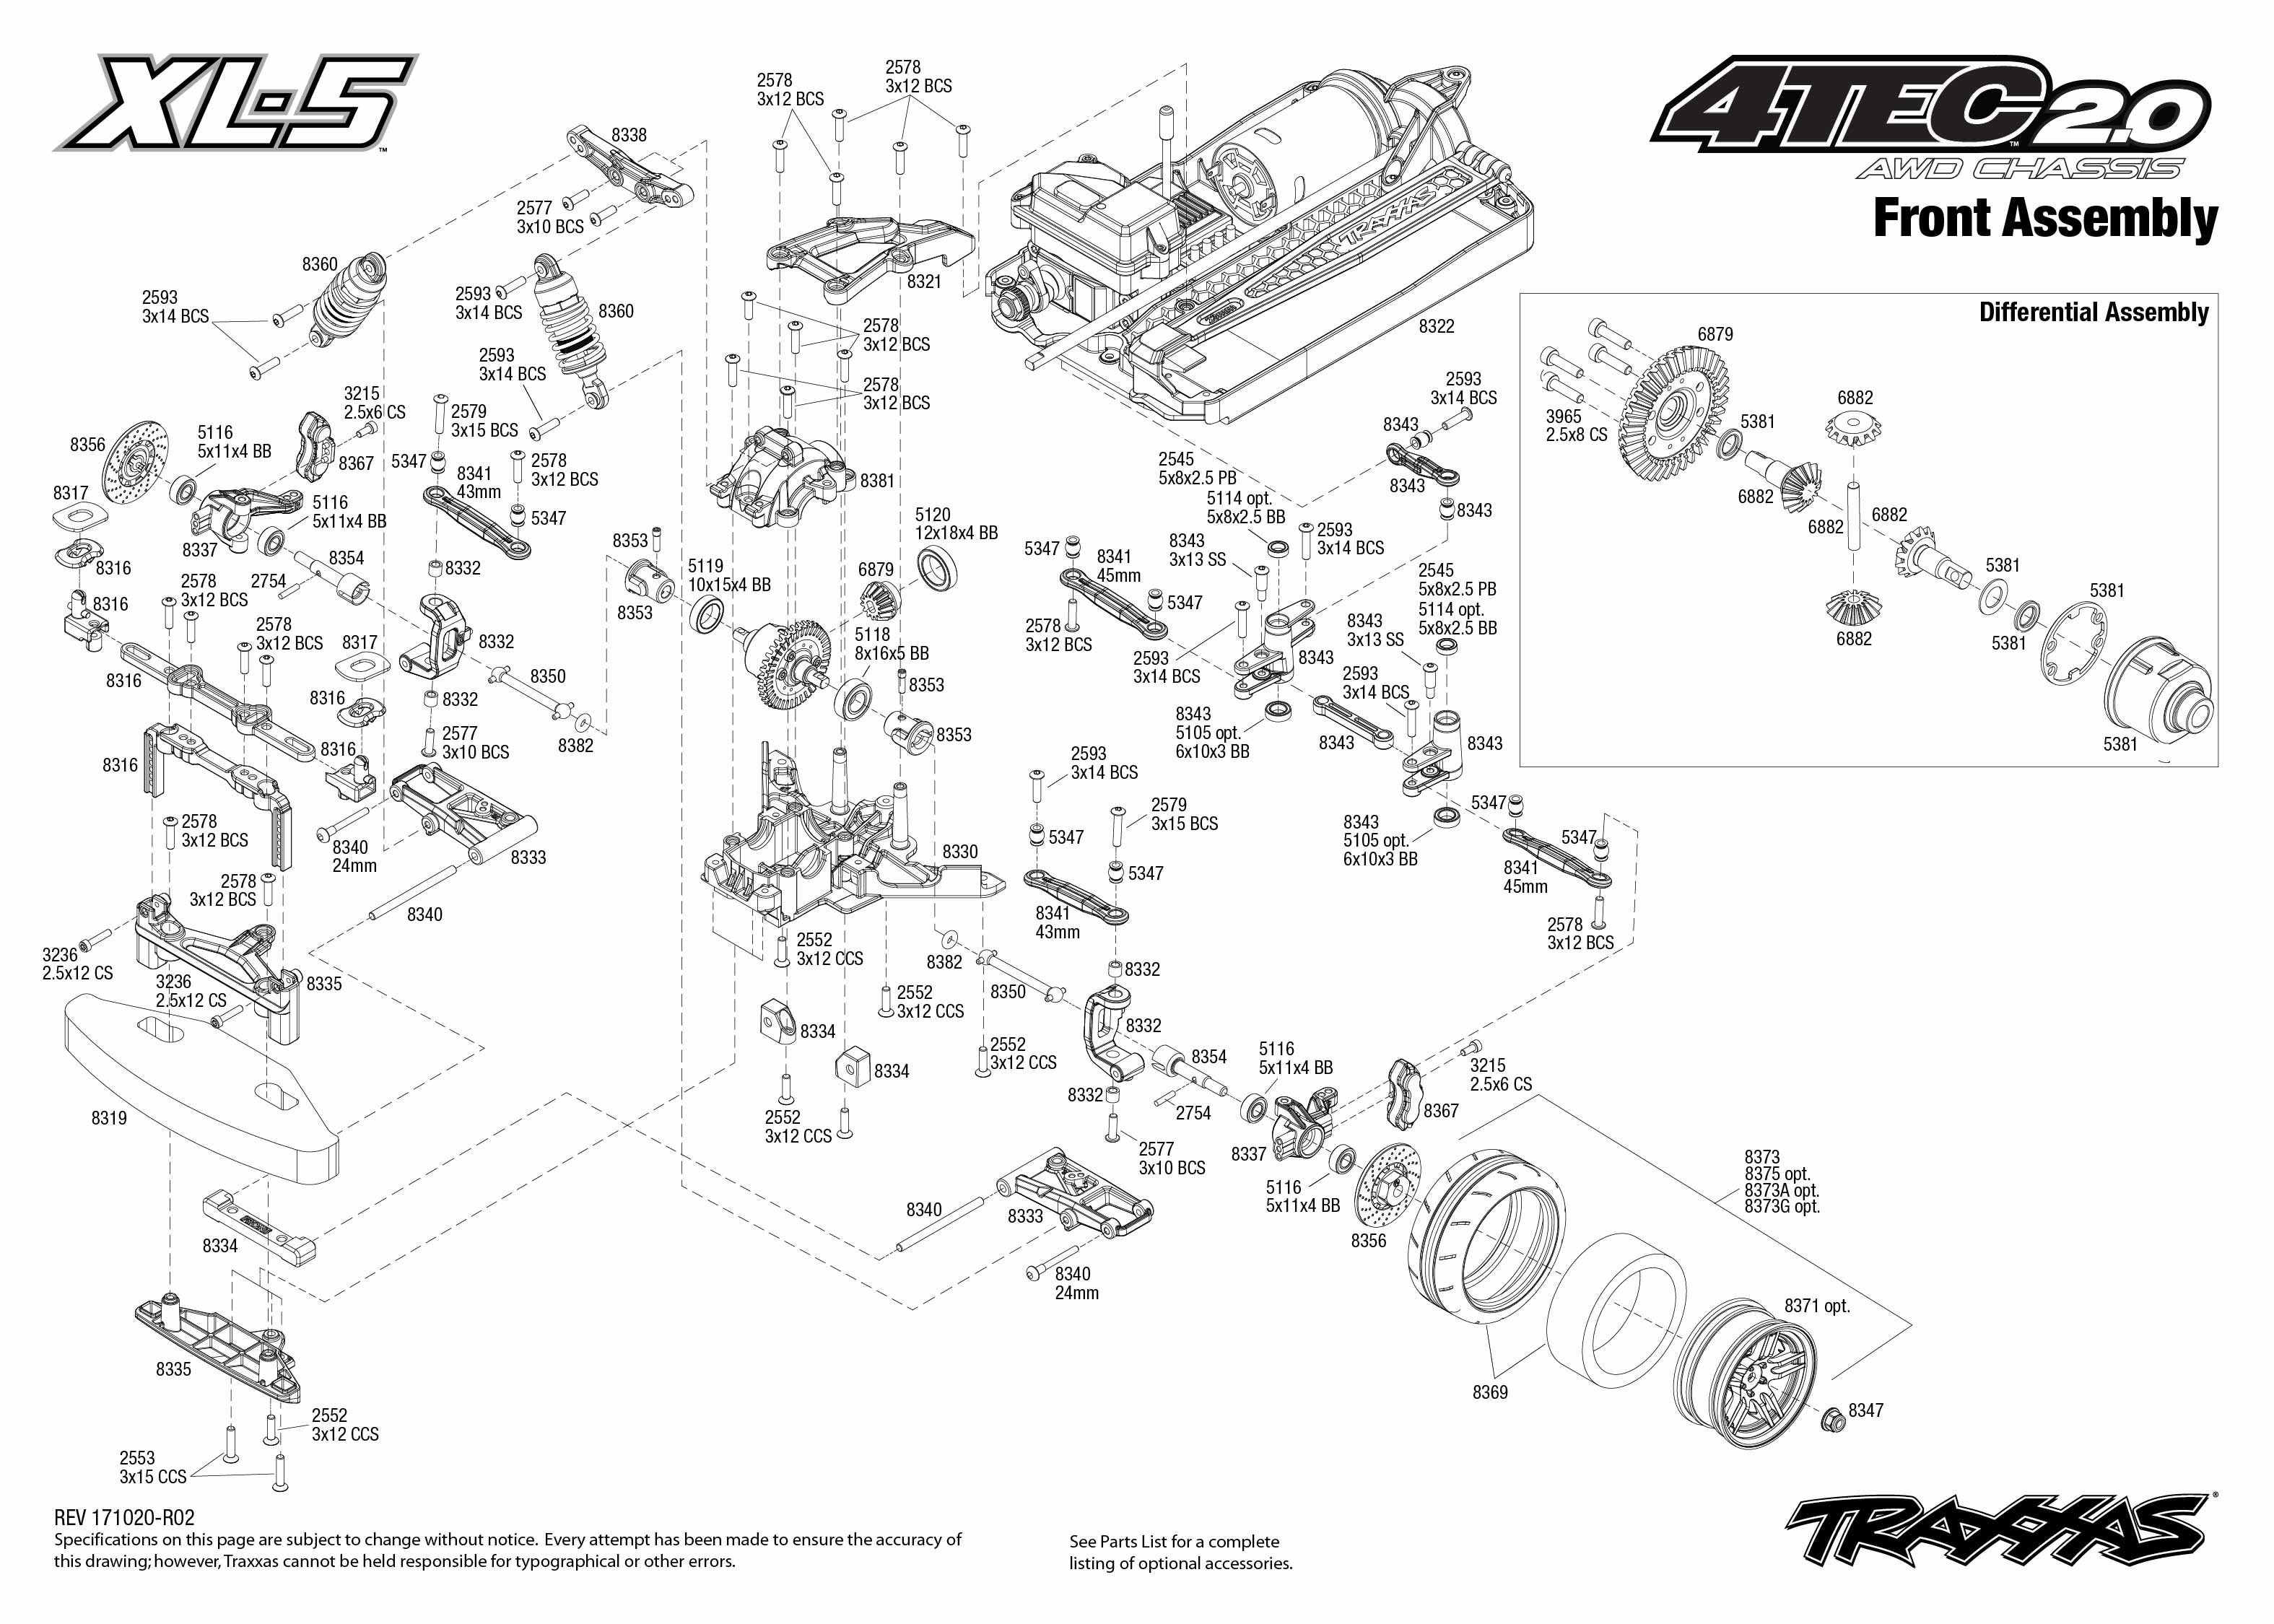 4 Tec 2 0 4 Front Assembly Exploded View